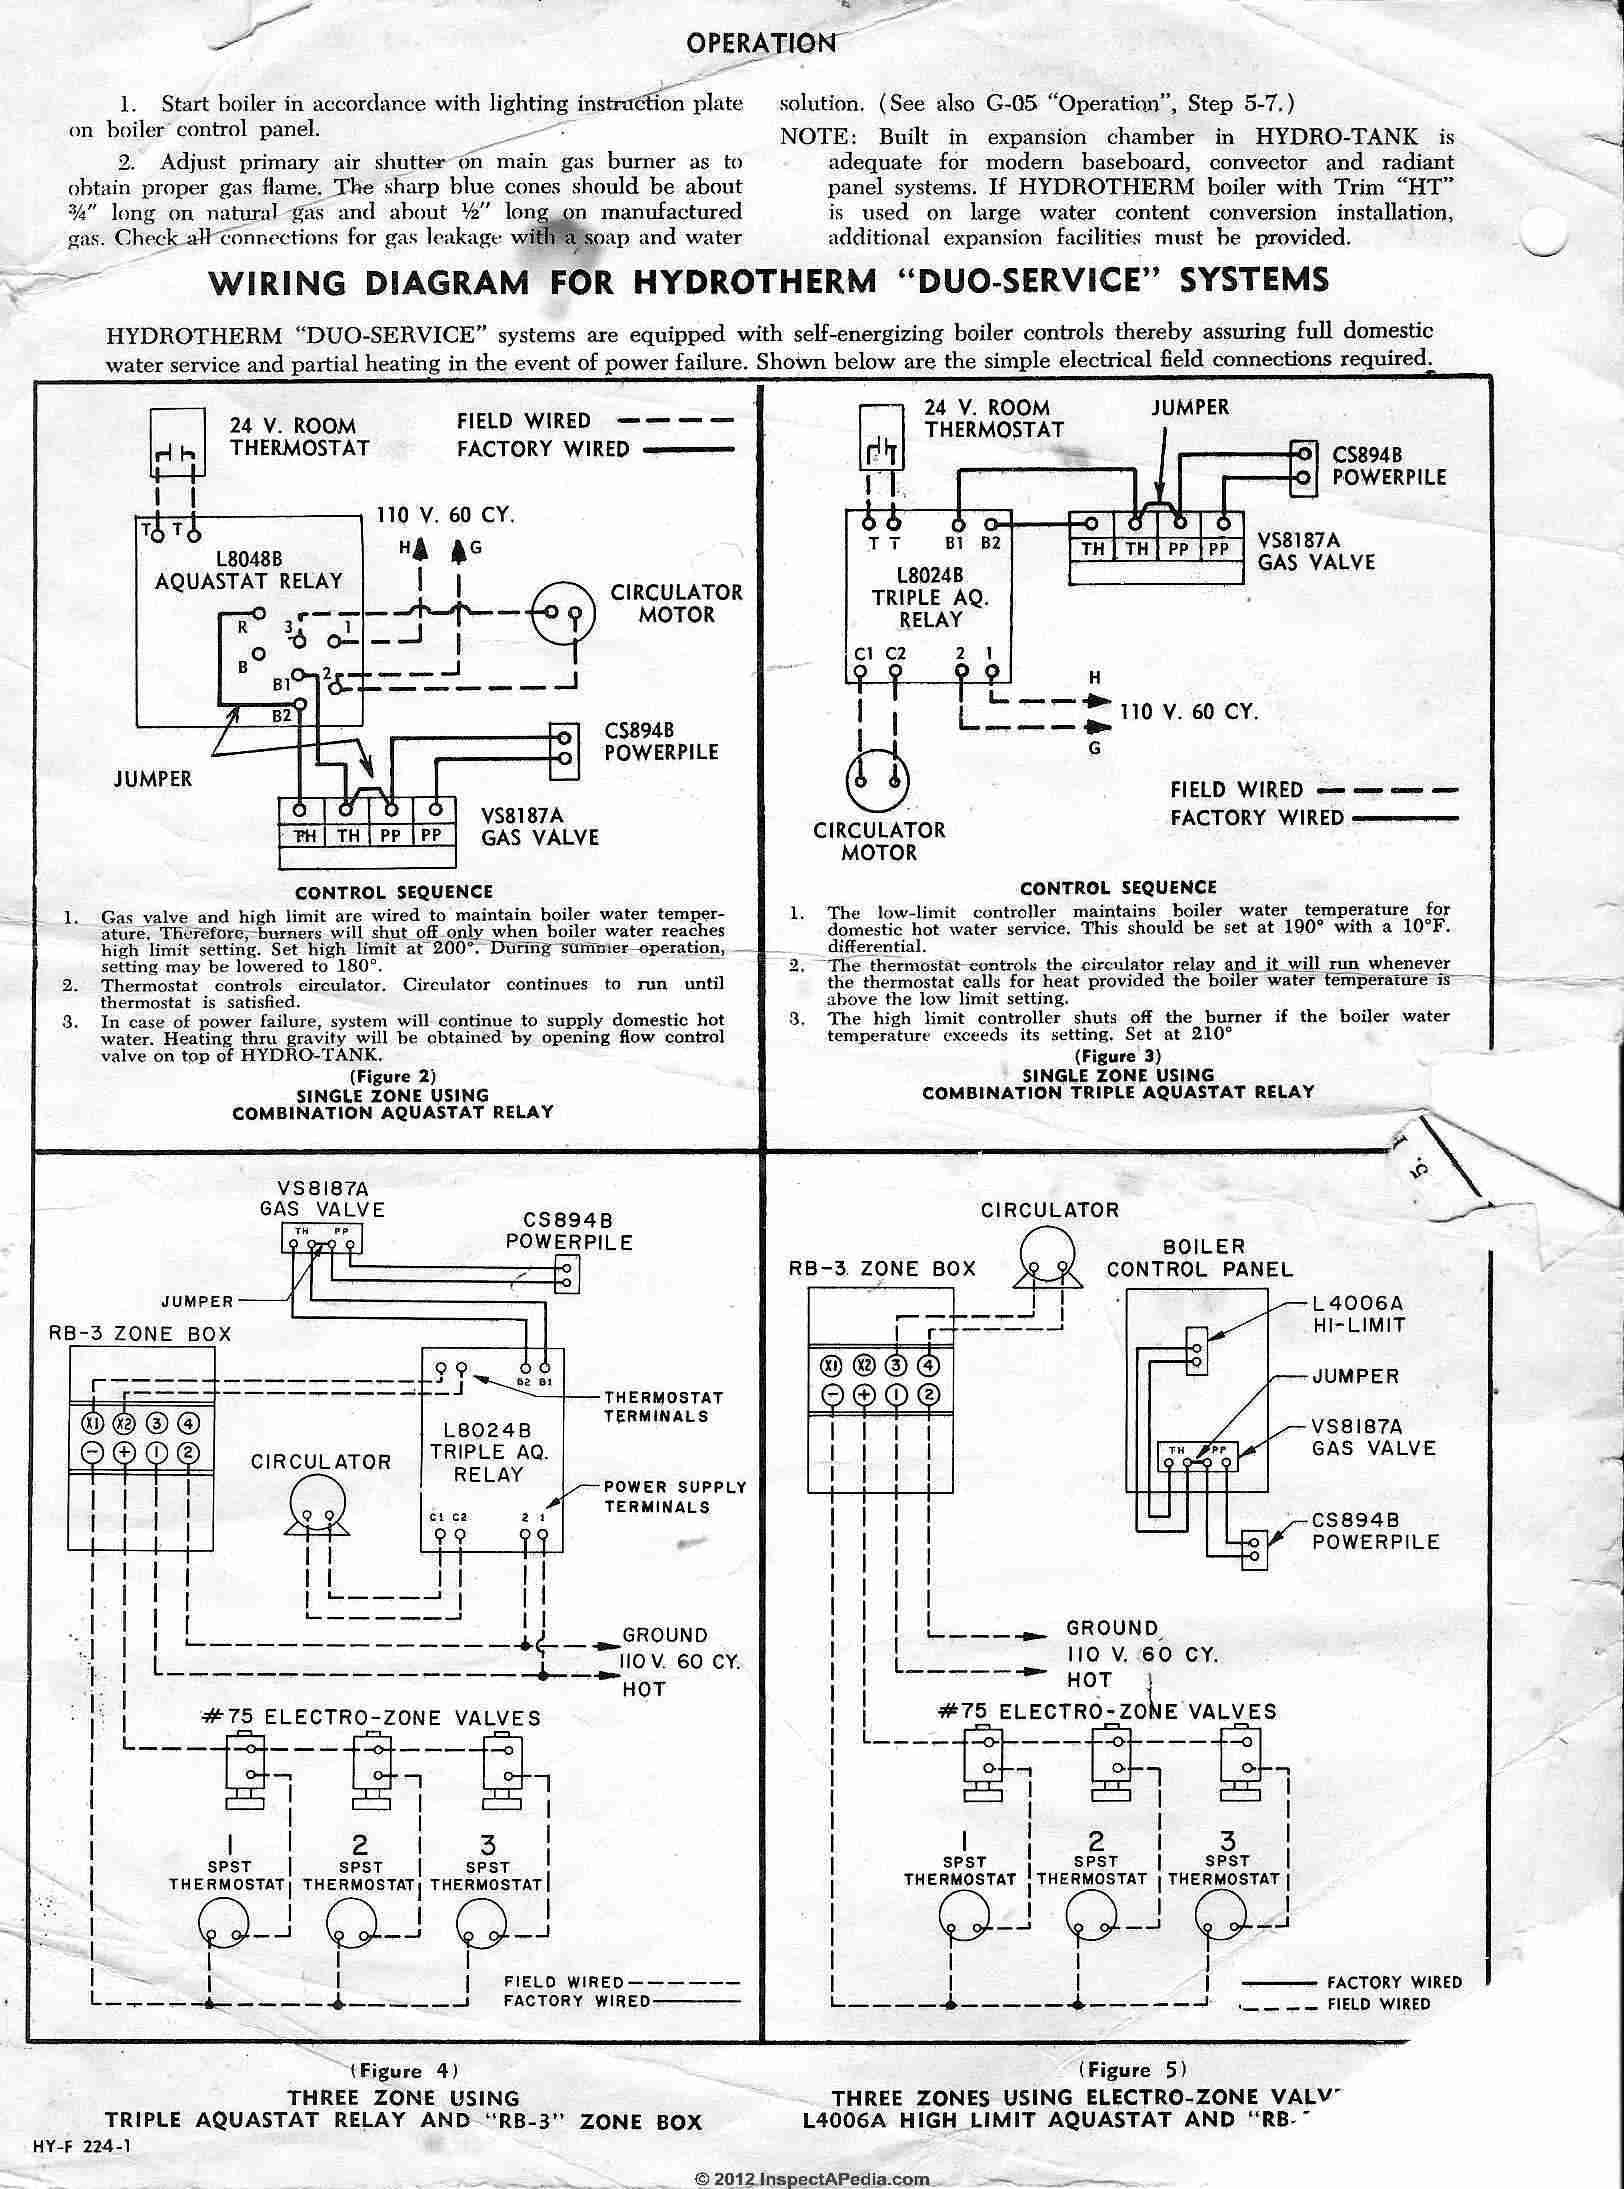 L8024B_Aquastat_0422_DJFcs heating boiler aquastat control diagnosis, troubleshooting, repair thermospa wiring diagram at crackthecode.co